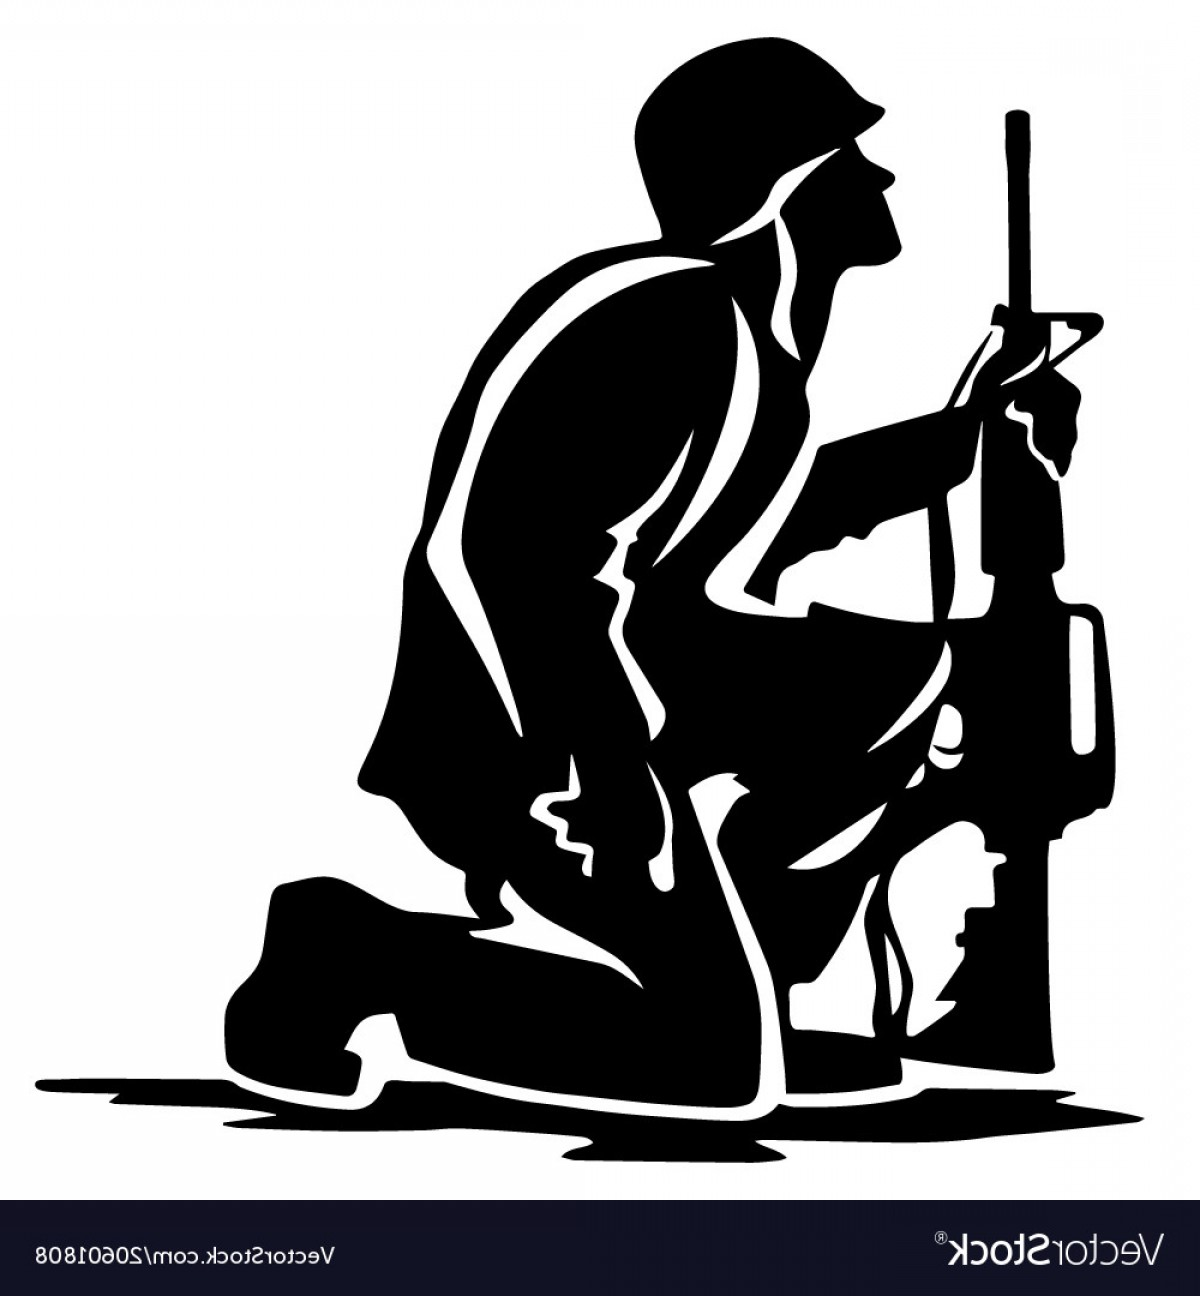 Military soldier kneeling with wings black and white clipart picture royalty free Military Soldier Kneeling Silhouette Vector | SOIDERGI picture royalty free